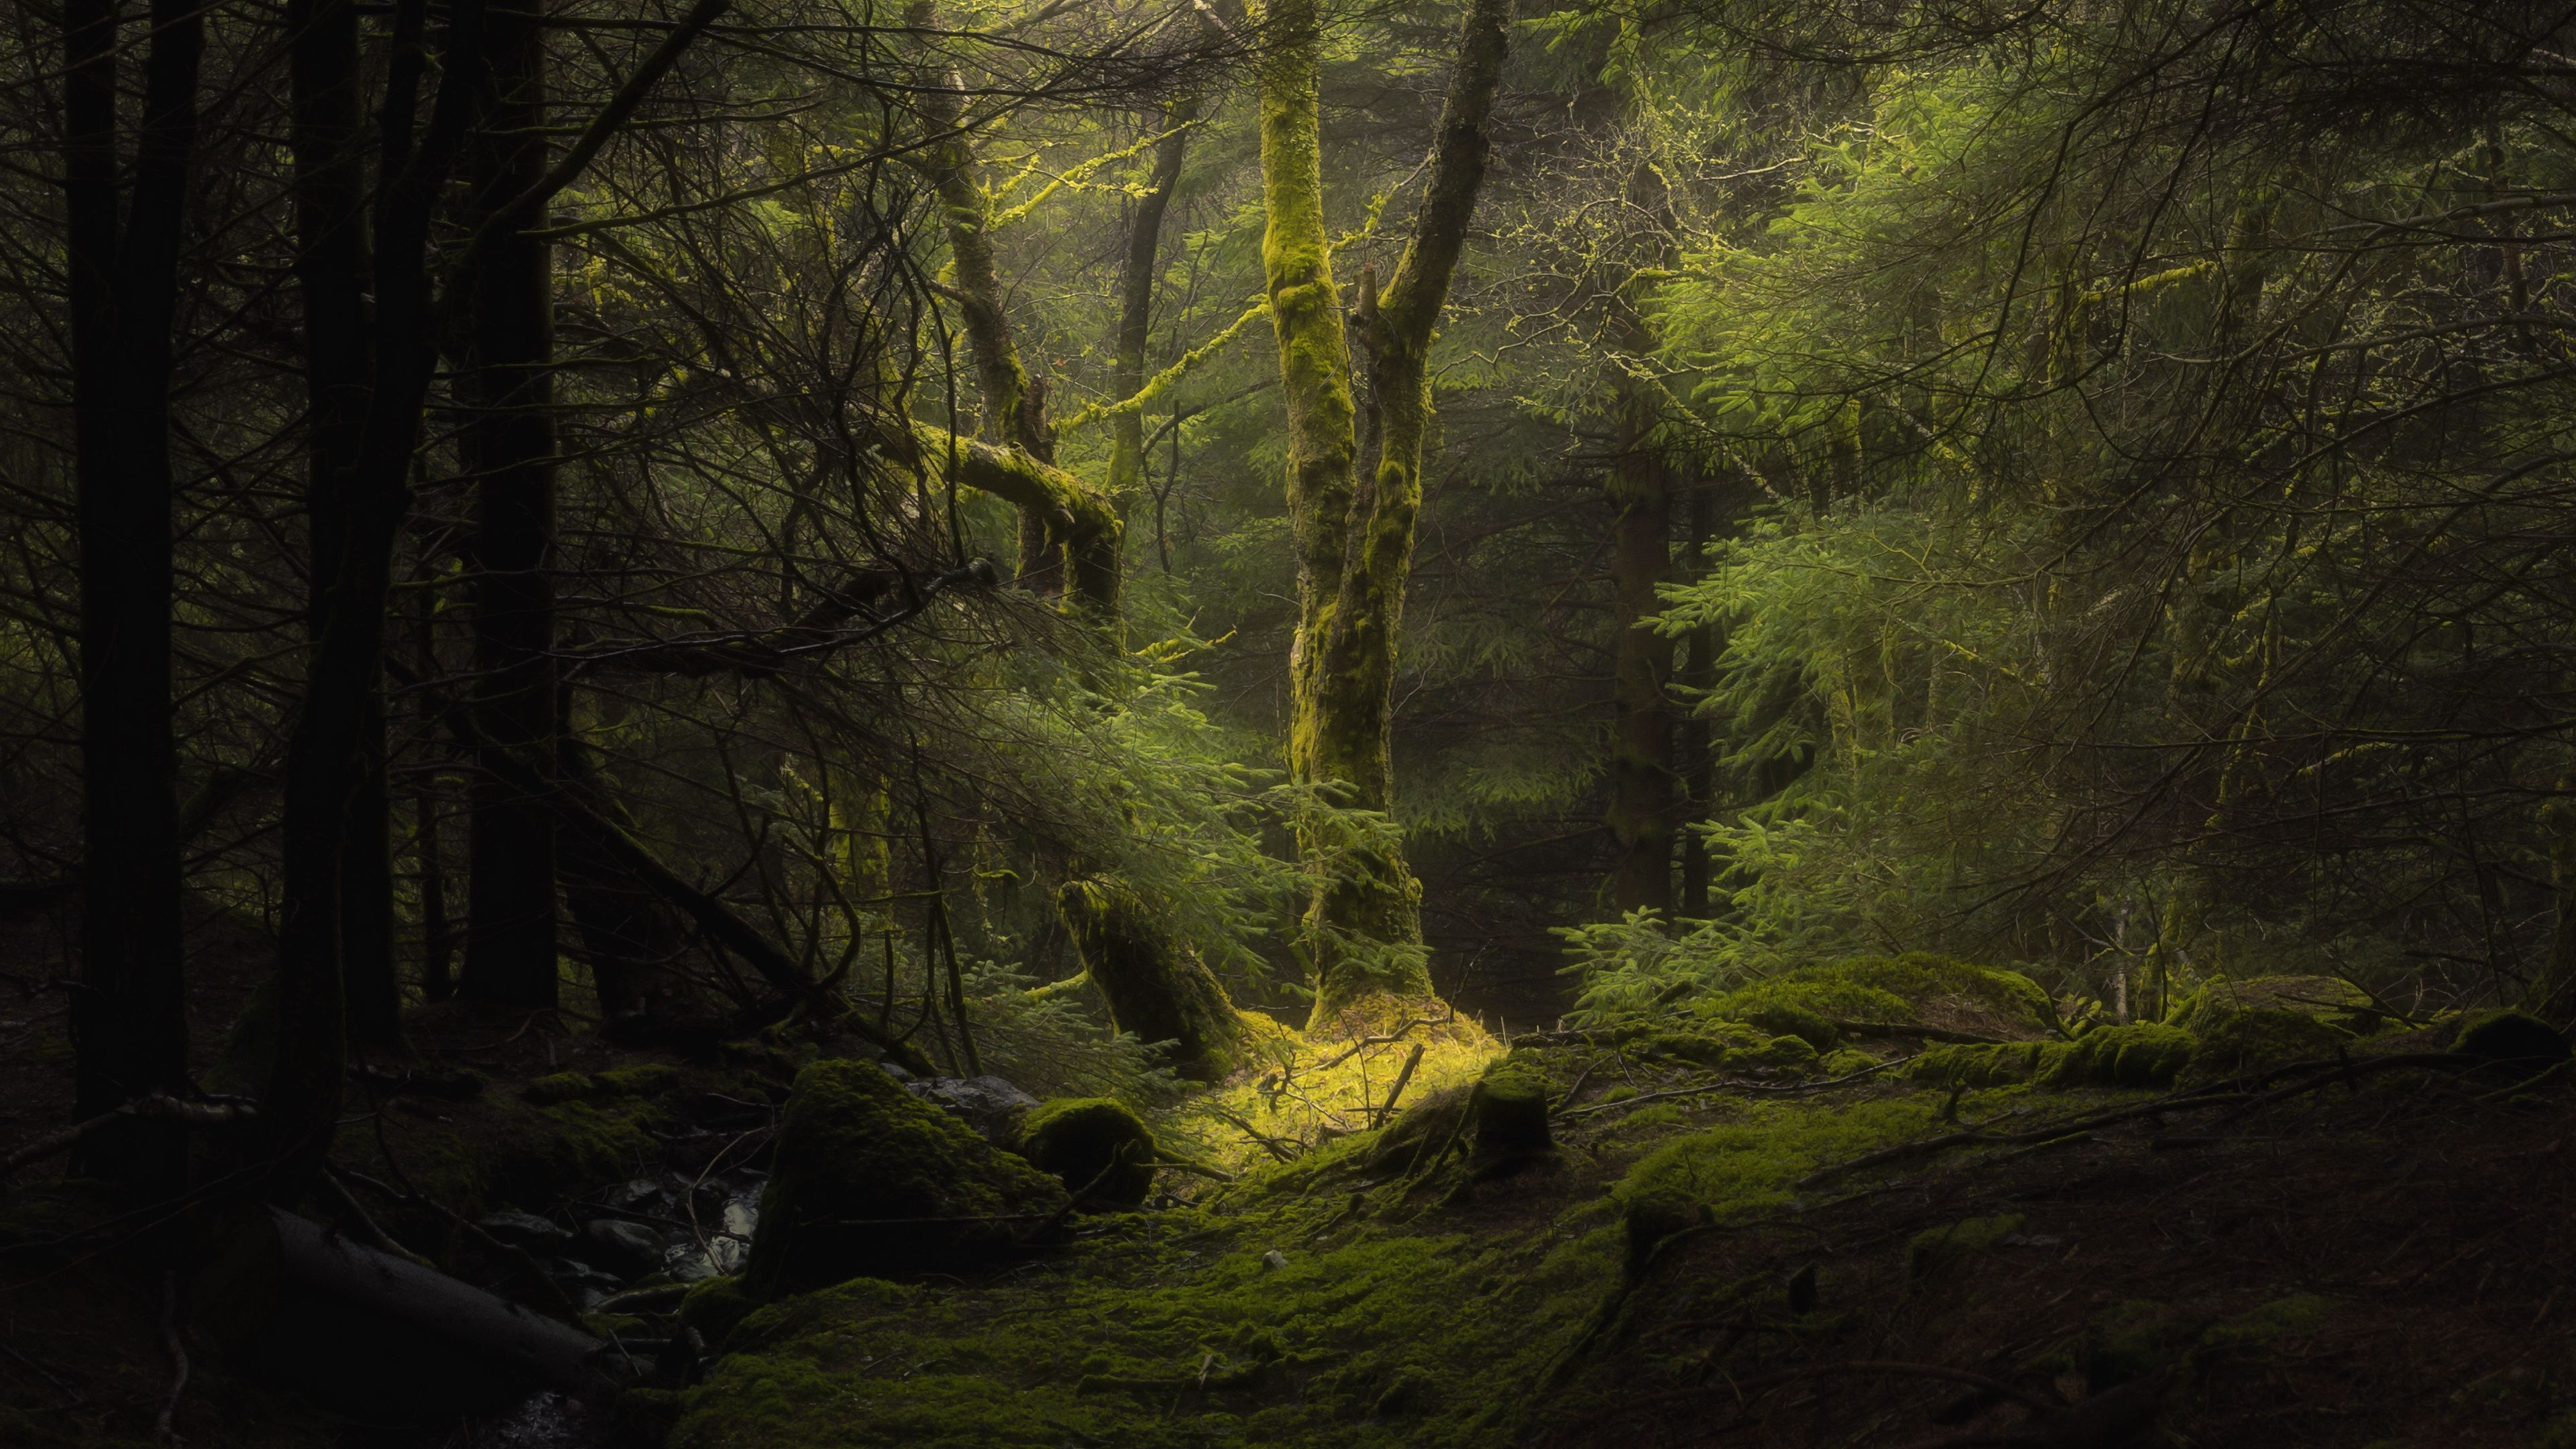 Forest Fog By John Mcsporran 3840x2160 In 2020 Hd Nature Wallpapers Nature Wallpaper Foggy Forest